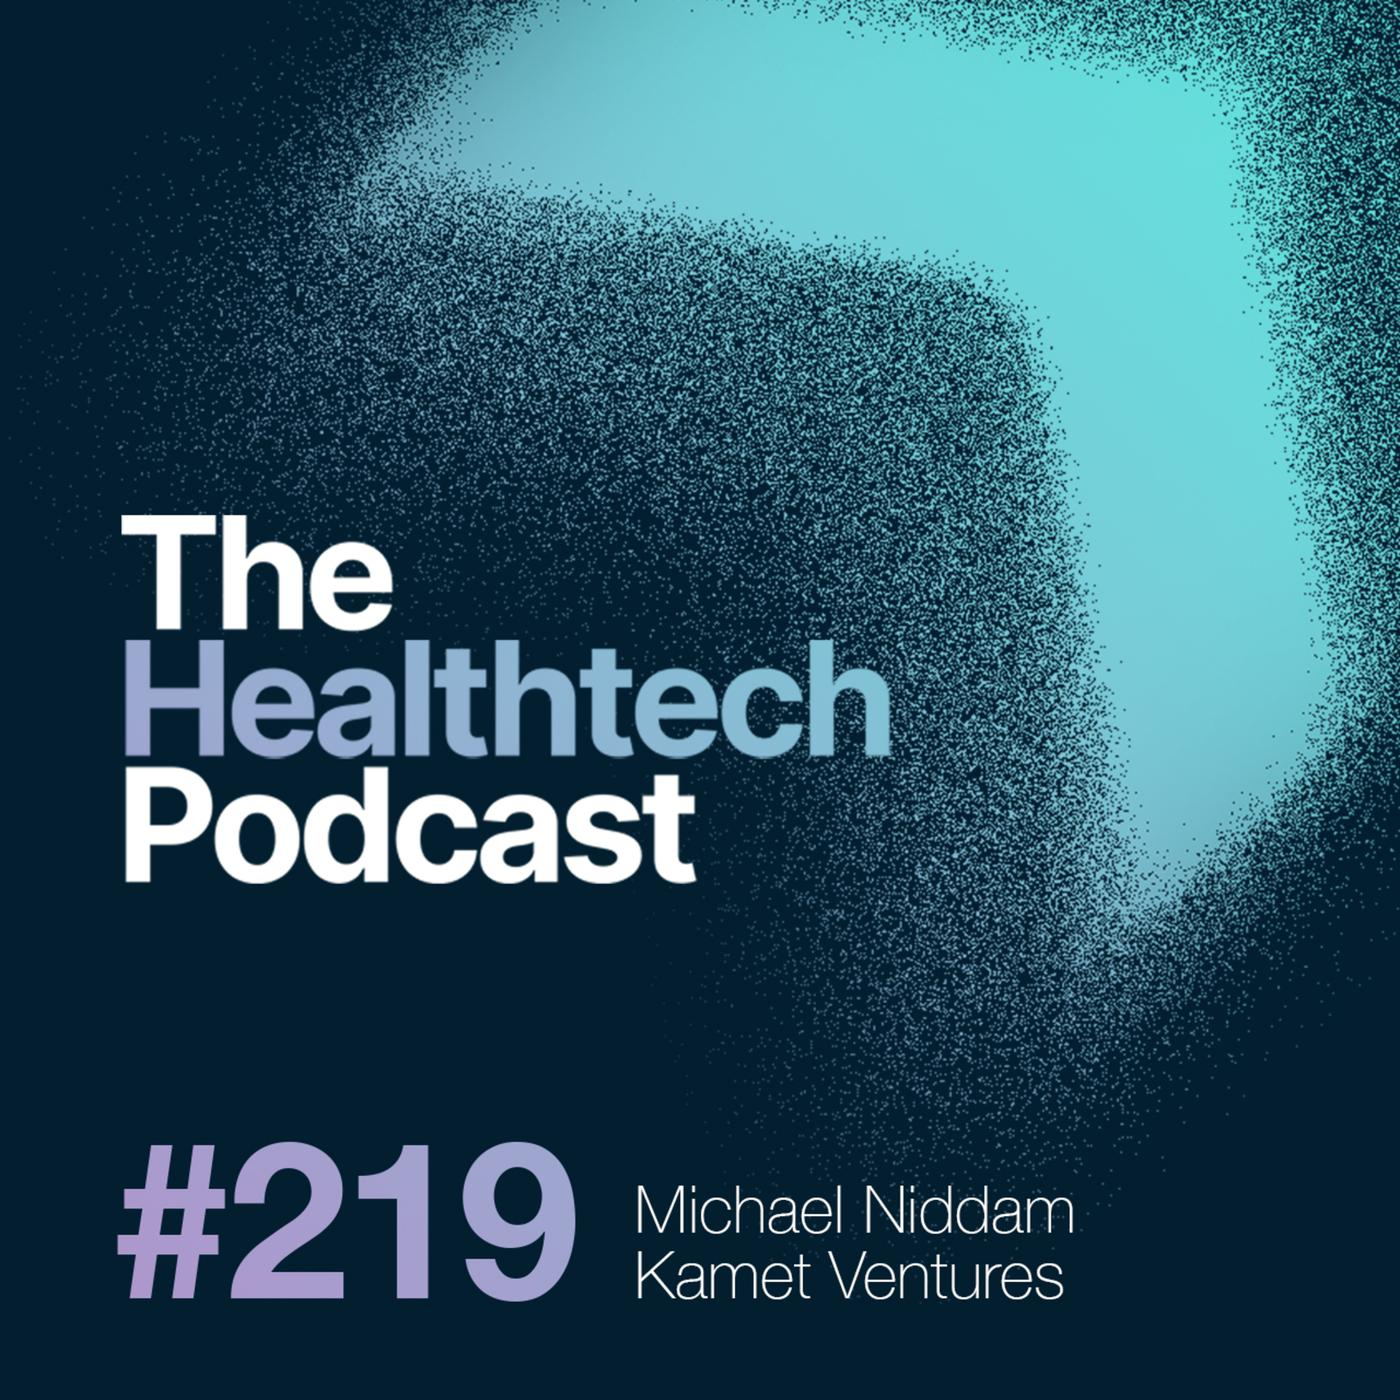 The HealthTech Podcast #219: The Story of Kamet Ventures with Co-Founder Michael Niddam